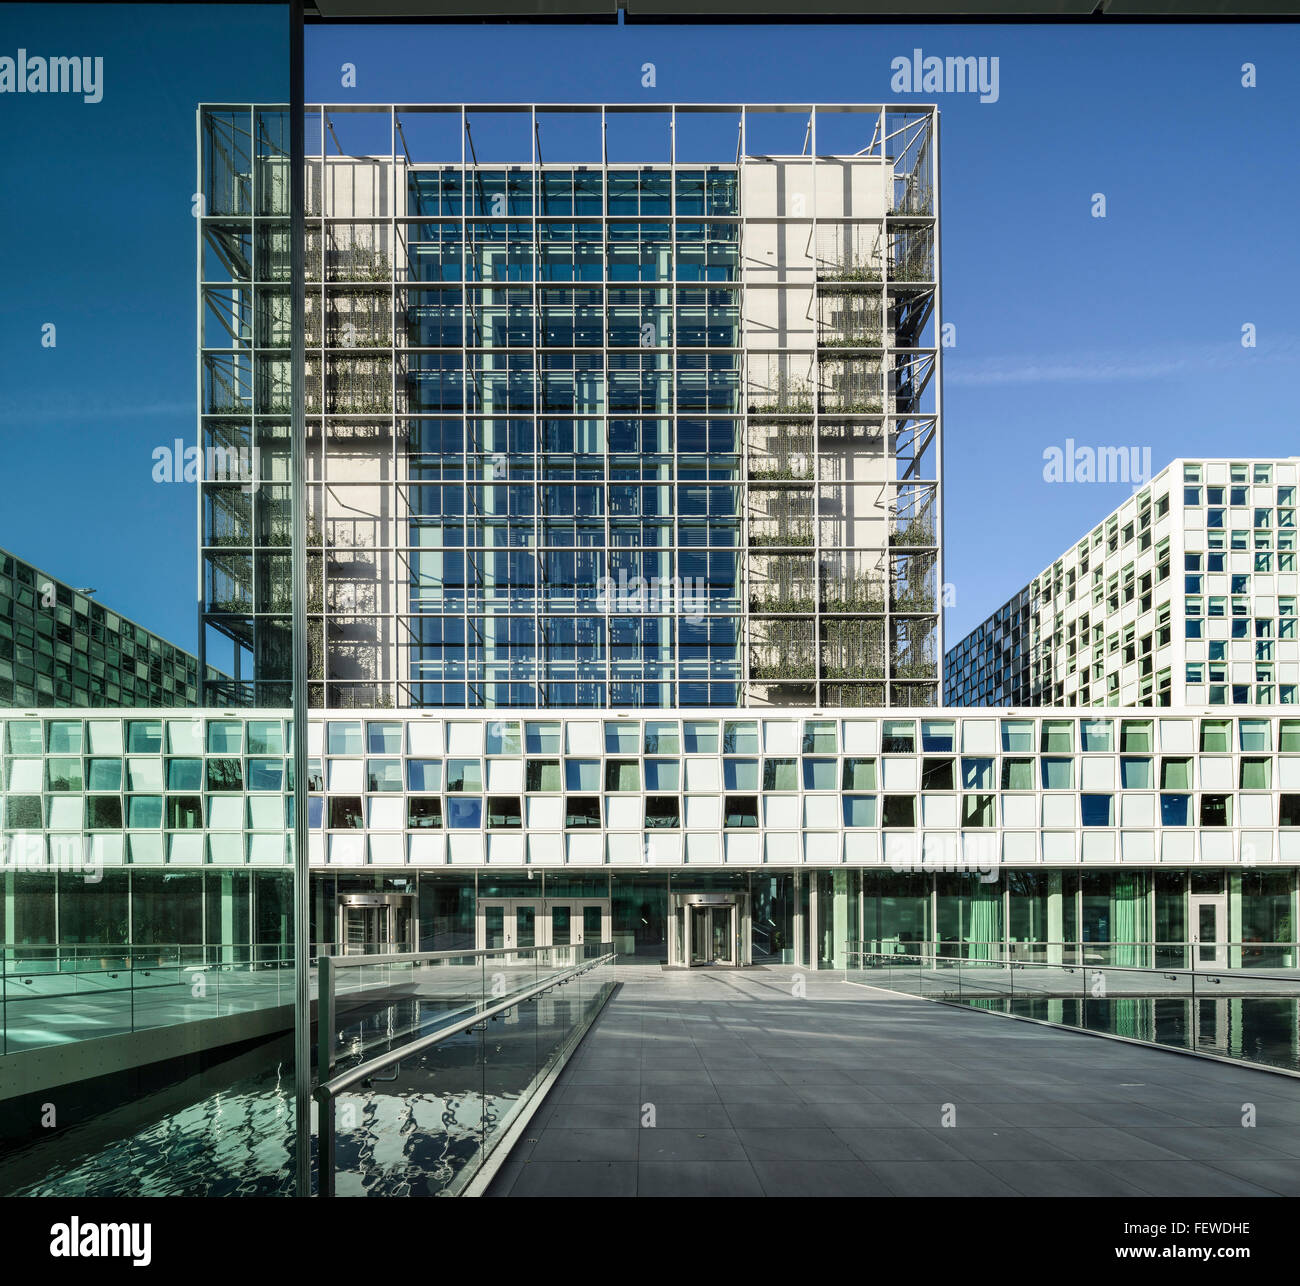 Front looking across moat. International Criminal Court (ICC) Den Stock  Photo - Alamy